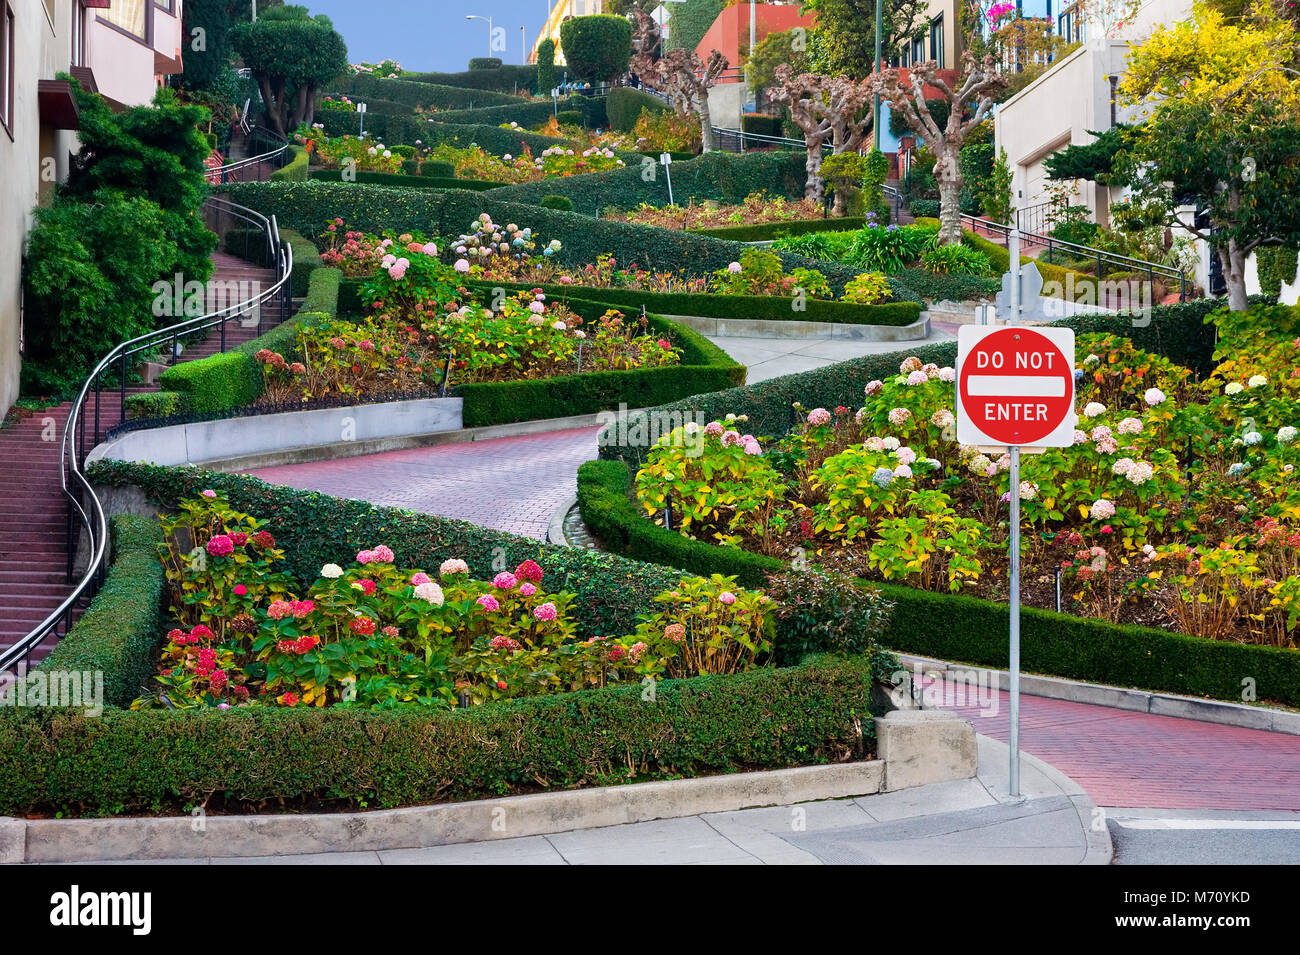 Lombard Street in San Francisco - Stock Image